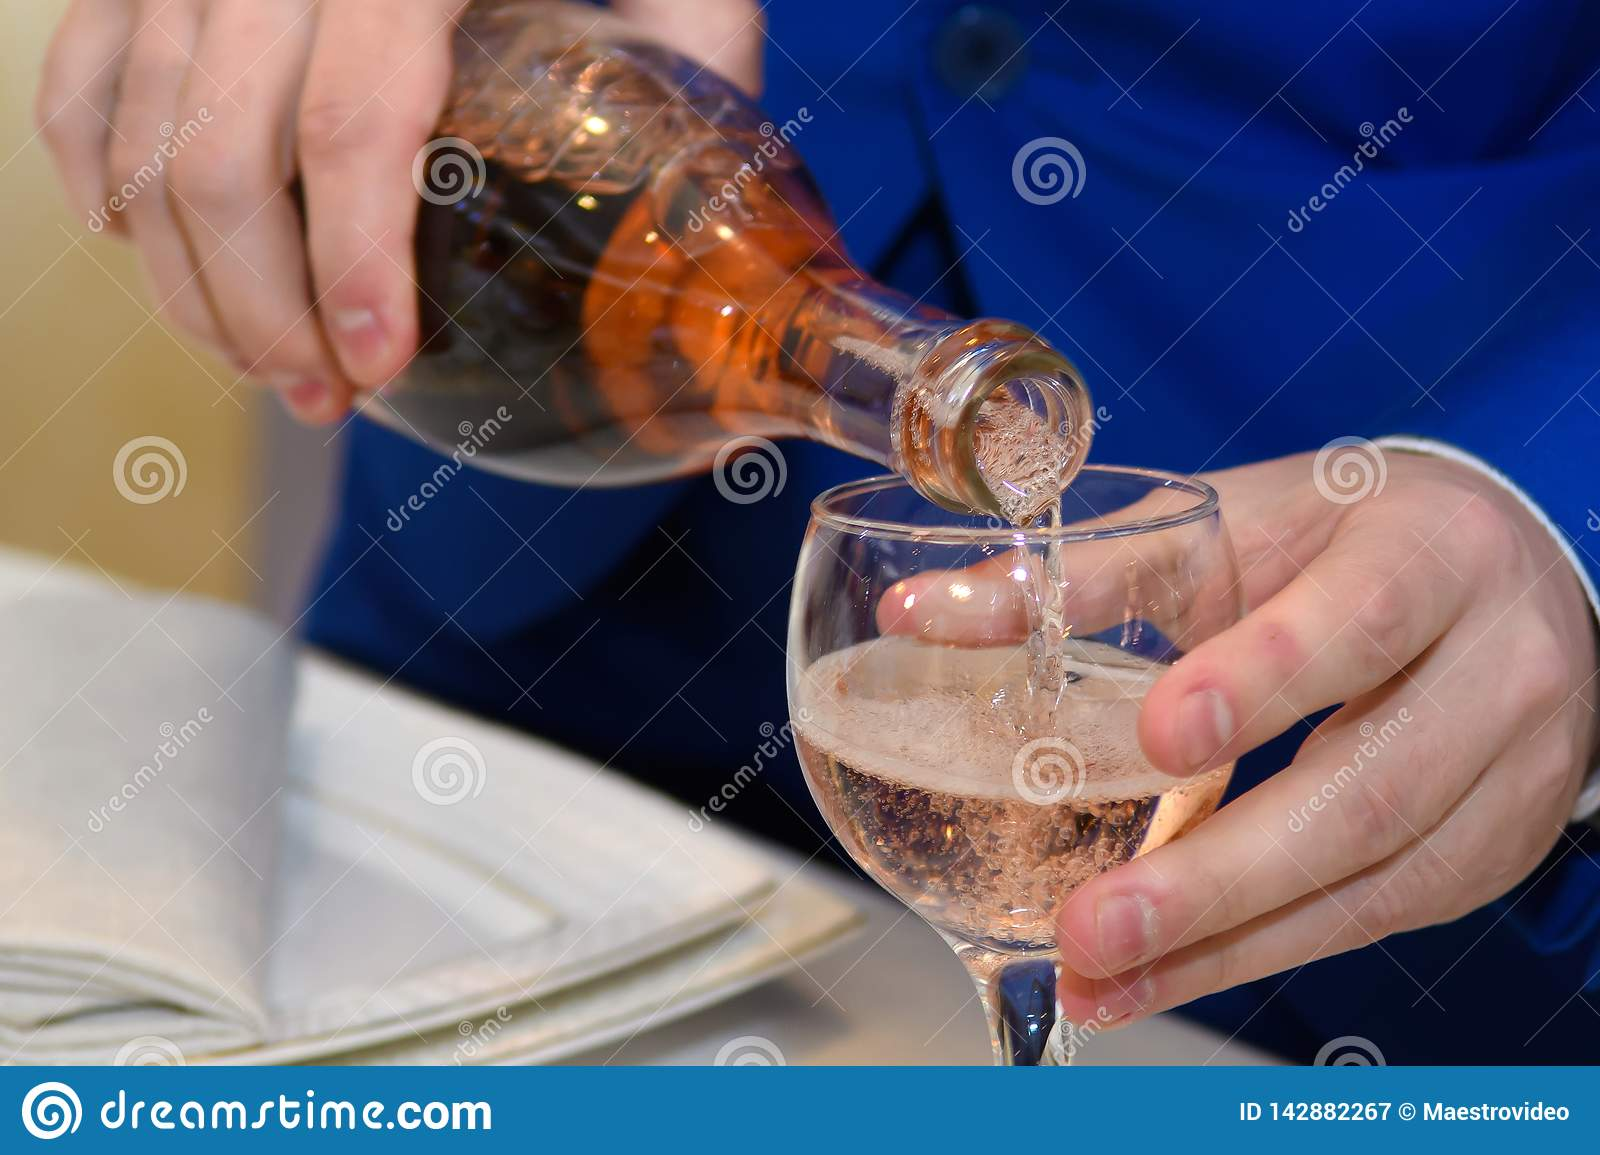 A man pours wine into a glass